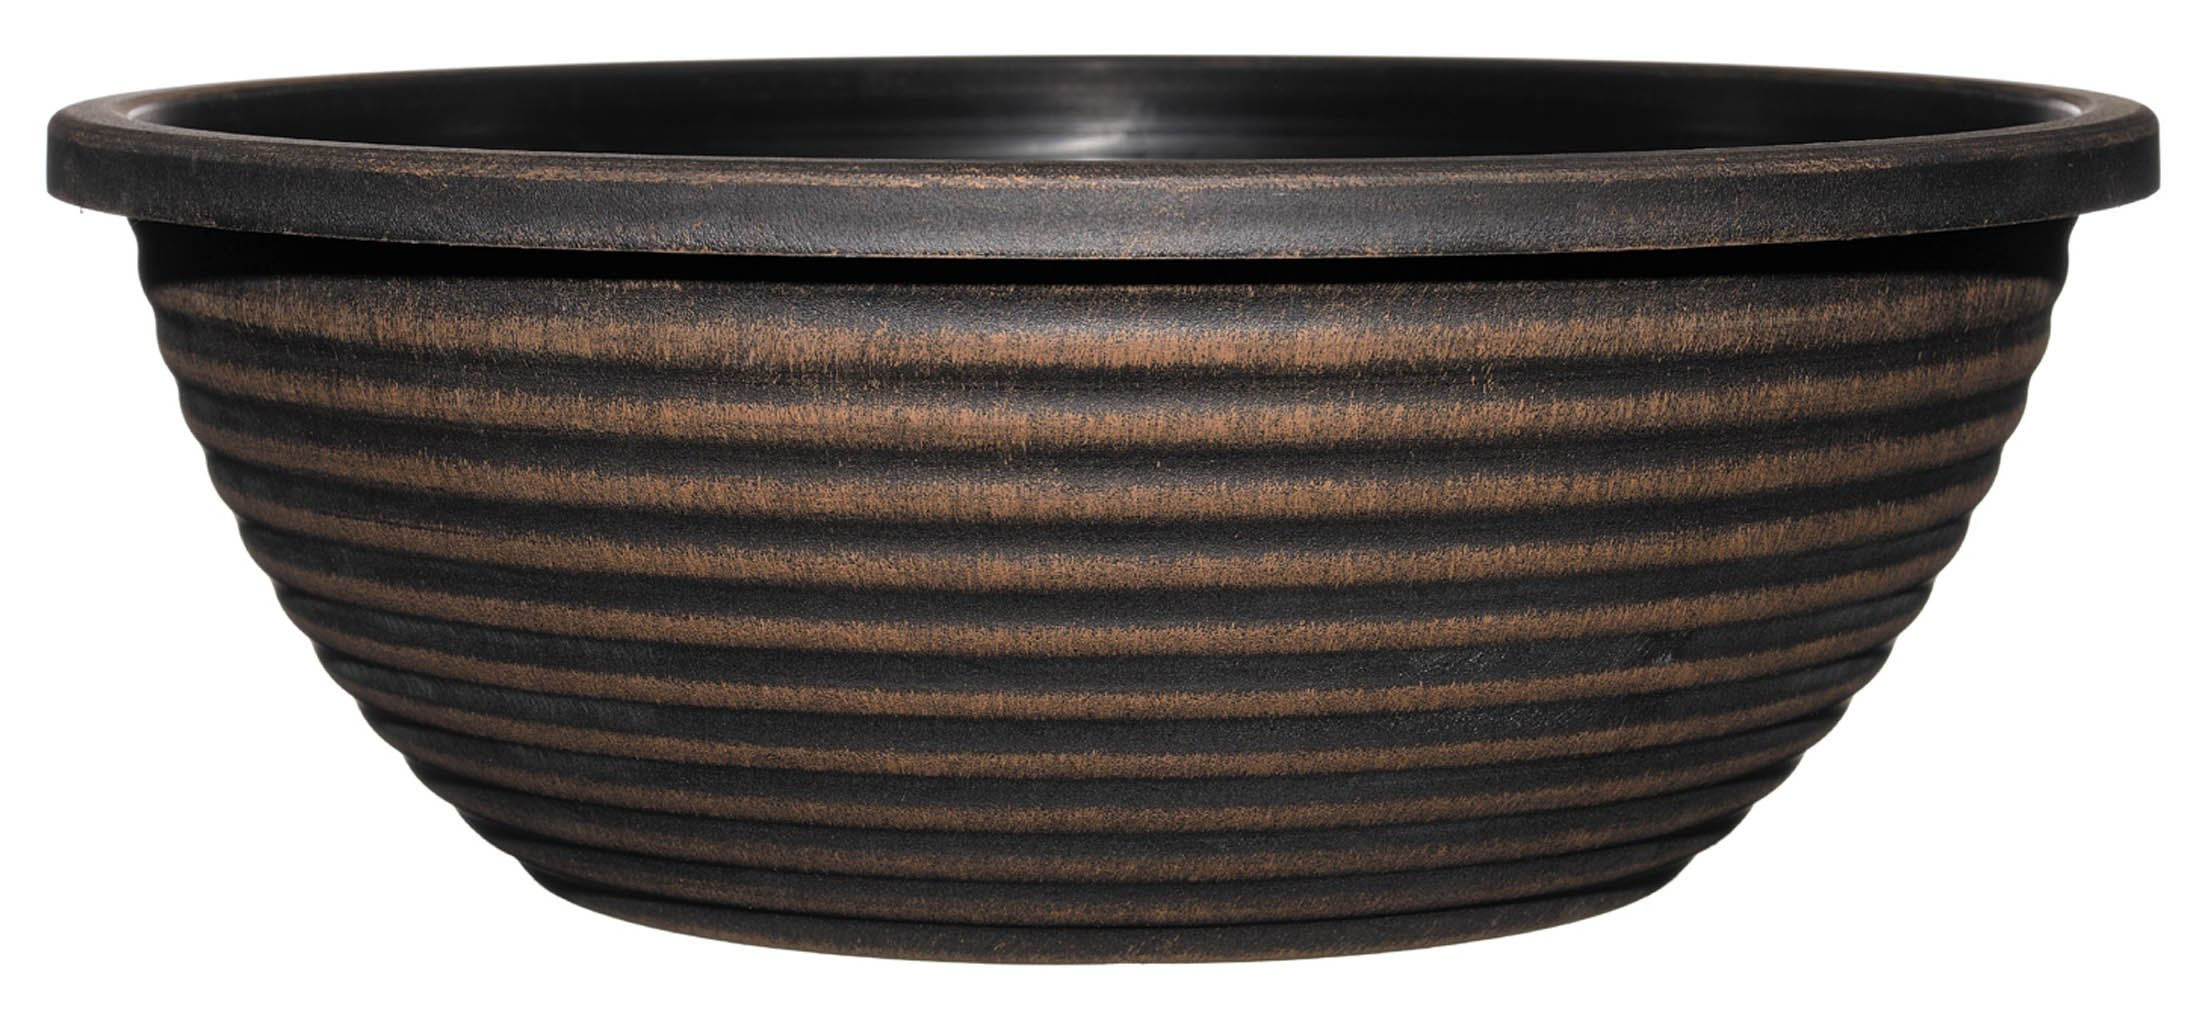 GARDENGOODZ Dorado Planter, 17-inch Large Bowl, Antique Copper by GARDENGOODZ